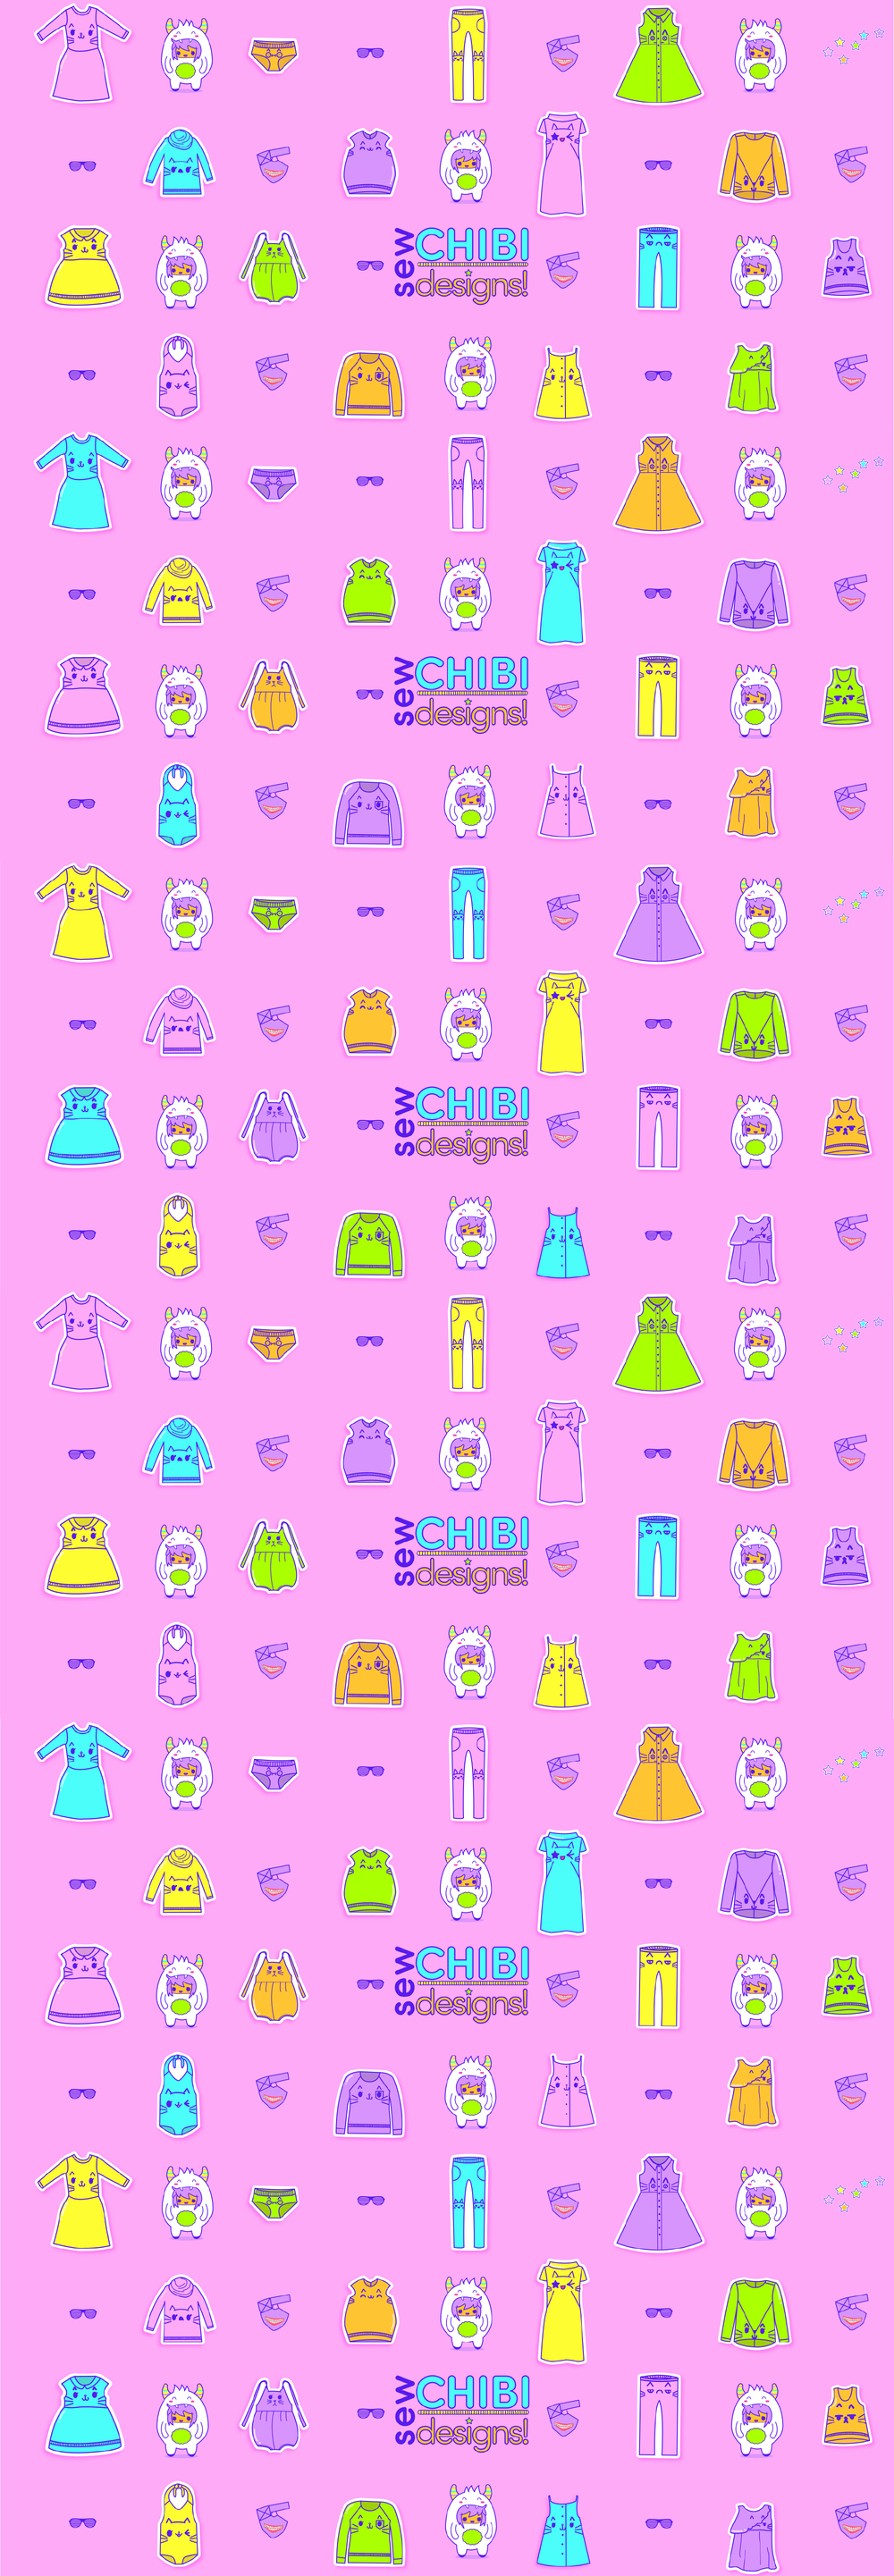 sticker-patternpink.png